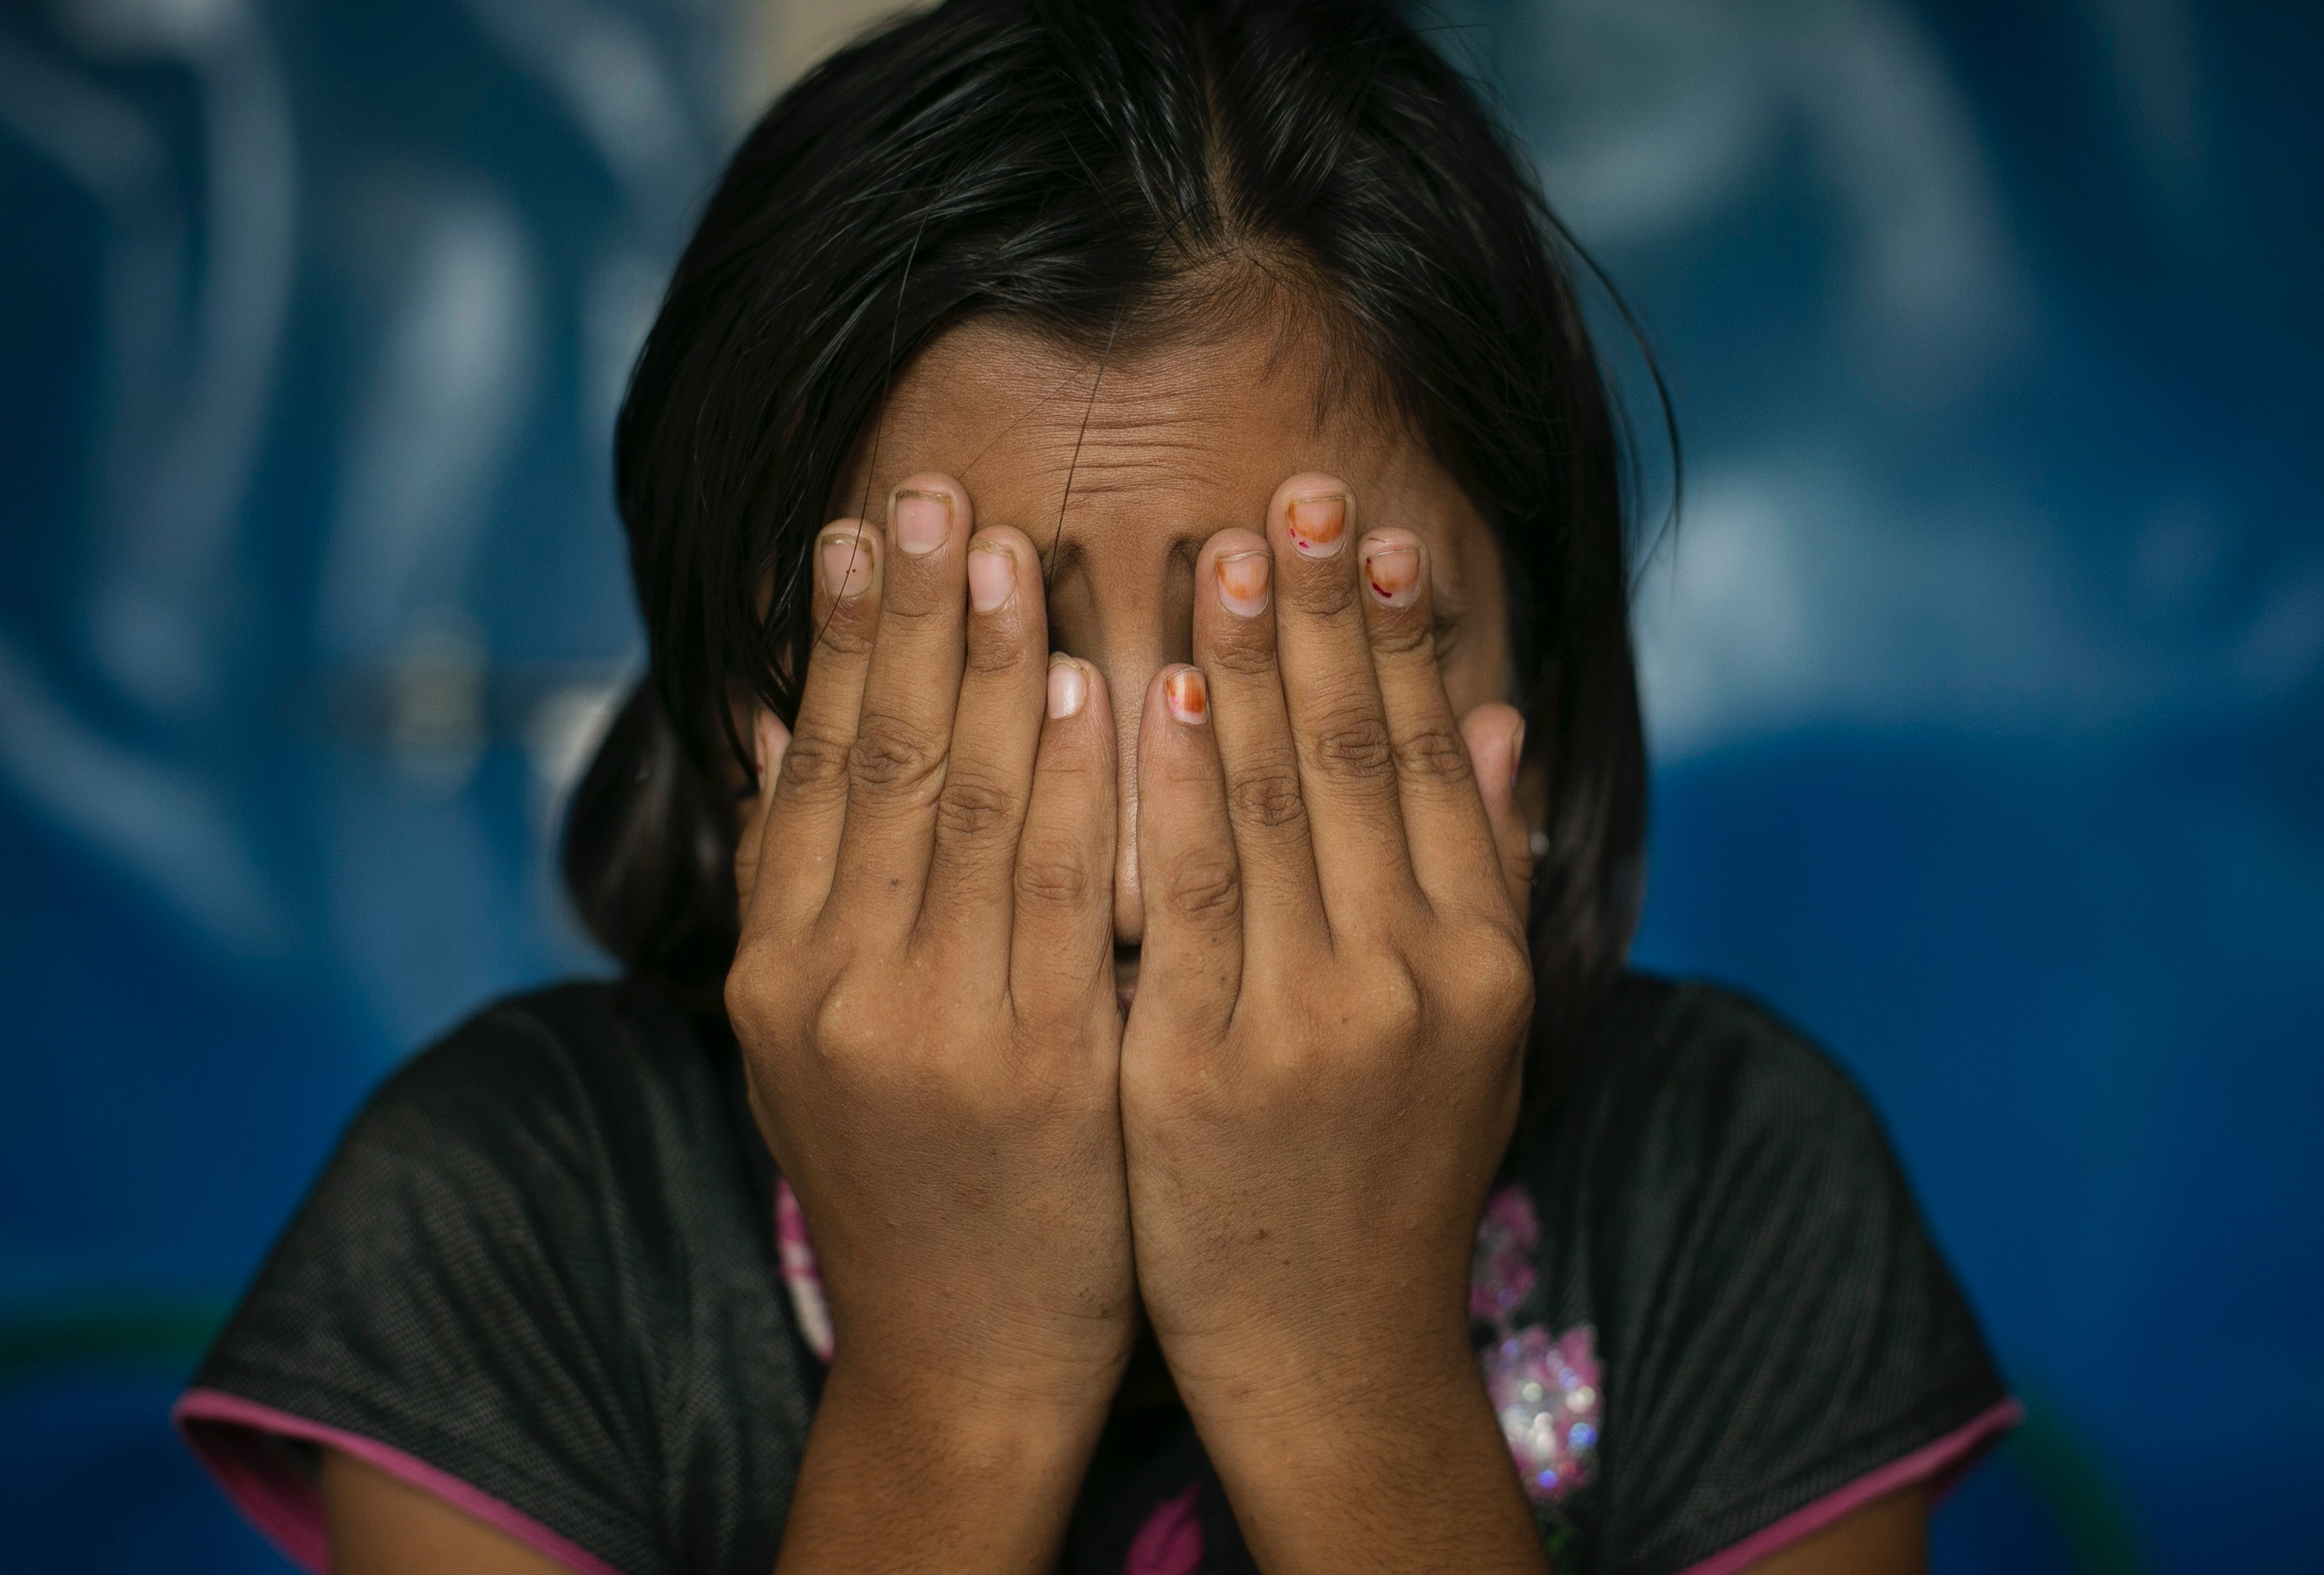 13 Sex Trafficking Statistics That Put The Worldwide Problem